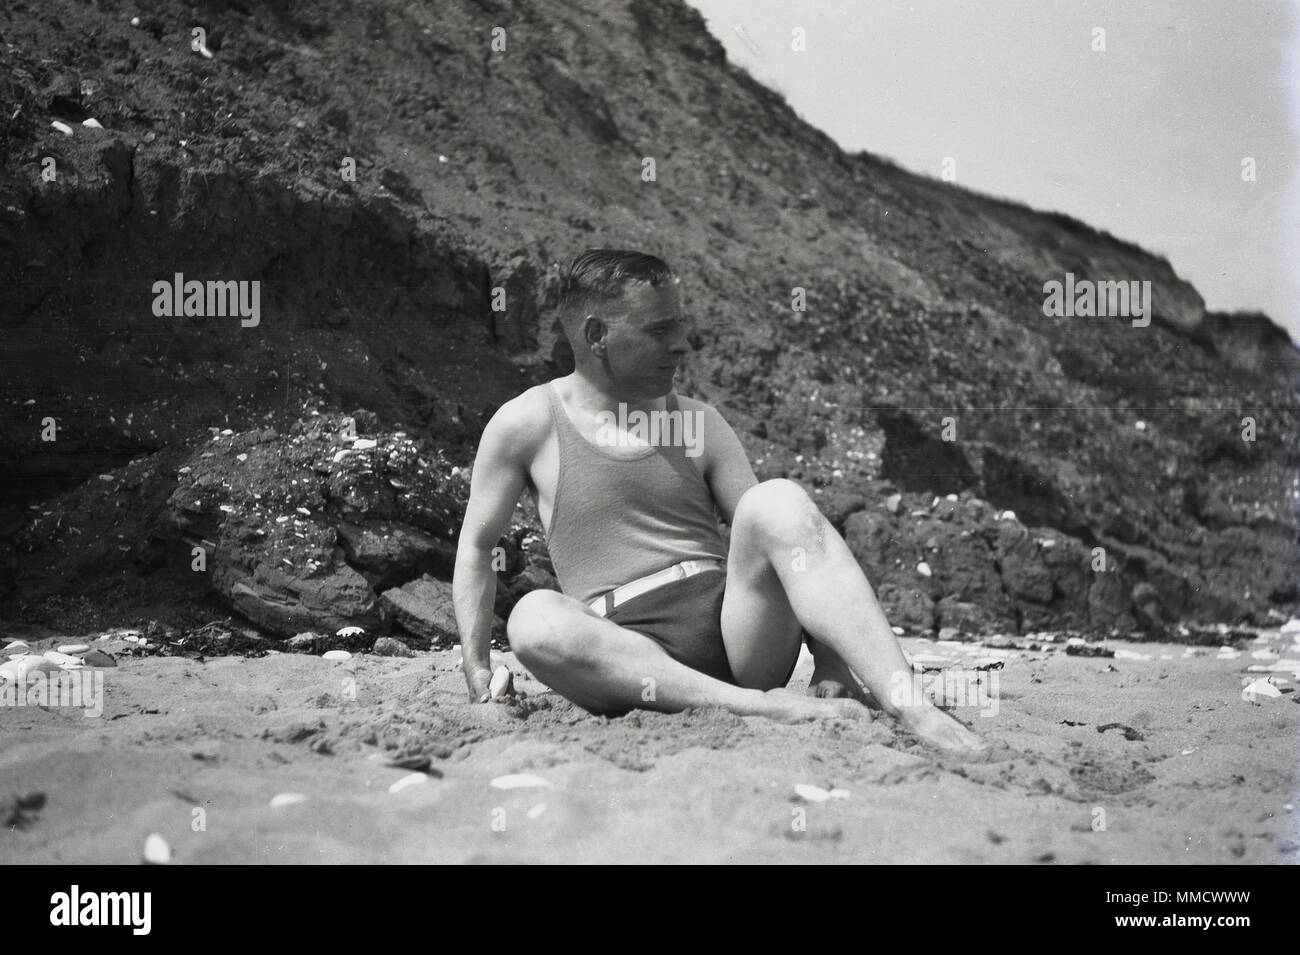 1930s, adult man in swimwear of the day lying on a sandy beaech, England, UK. - Stock Image